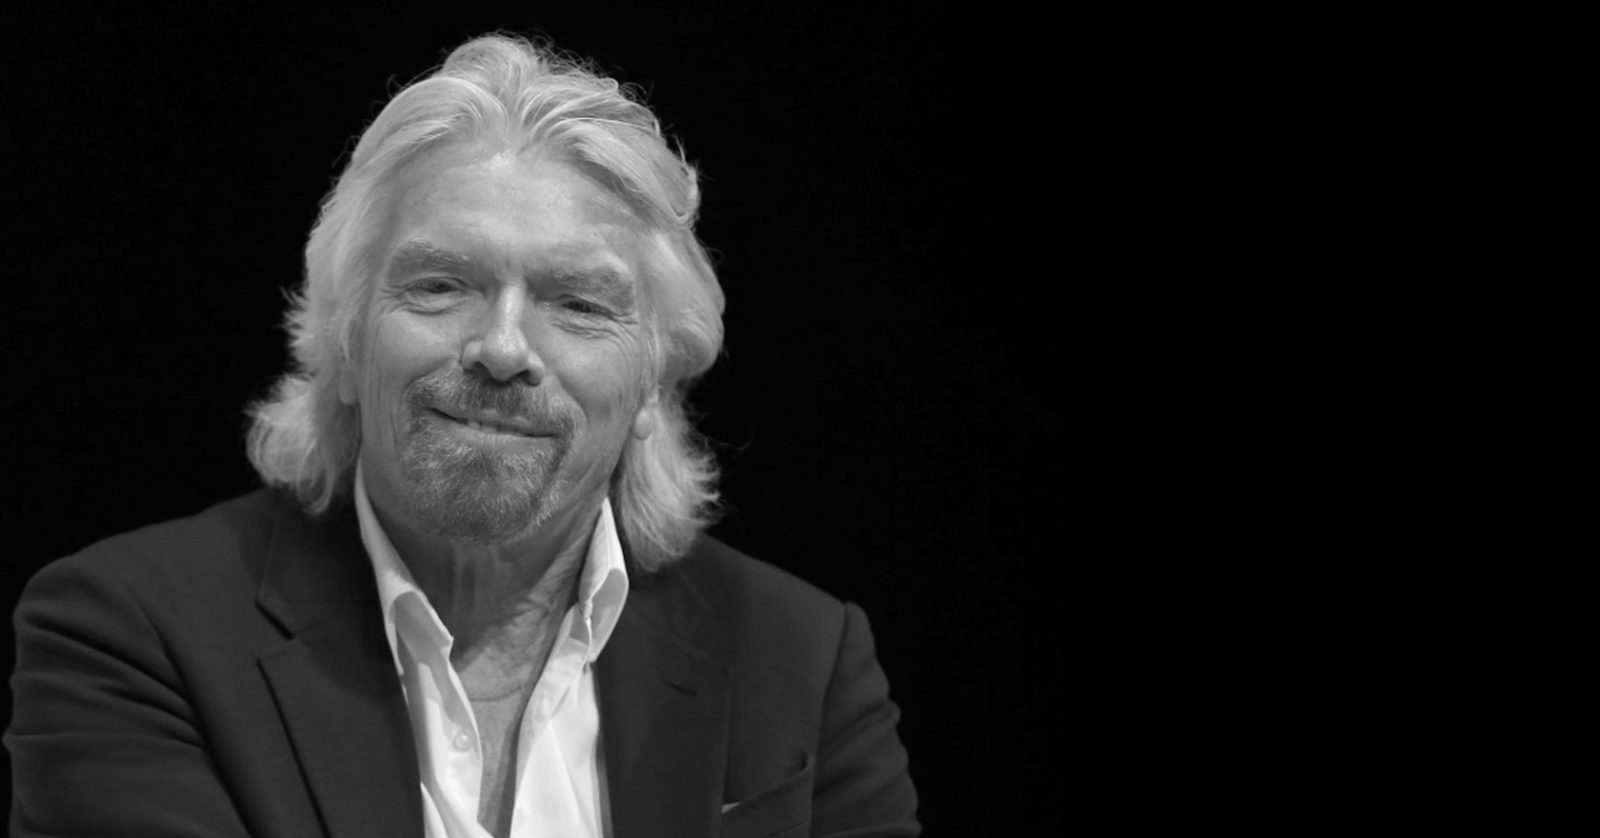 Book or Hire Celebrity Speaker SIR RICHARD BRANSON Founder of Virgin Group